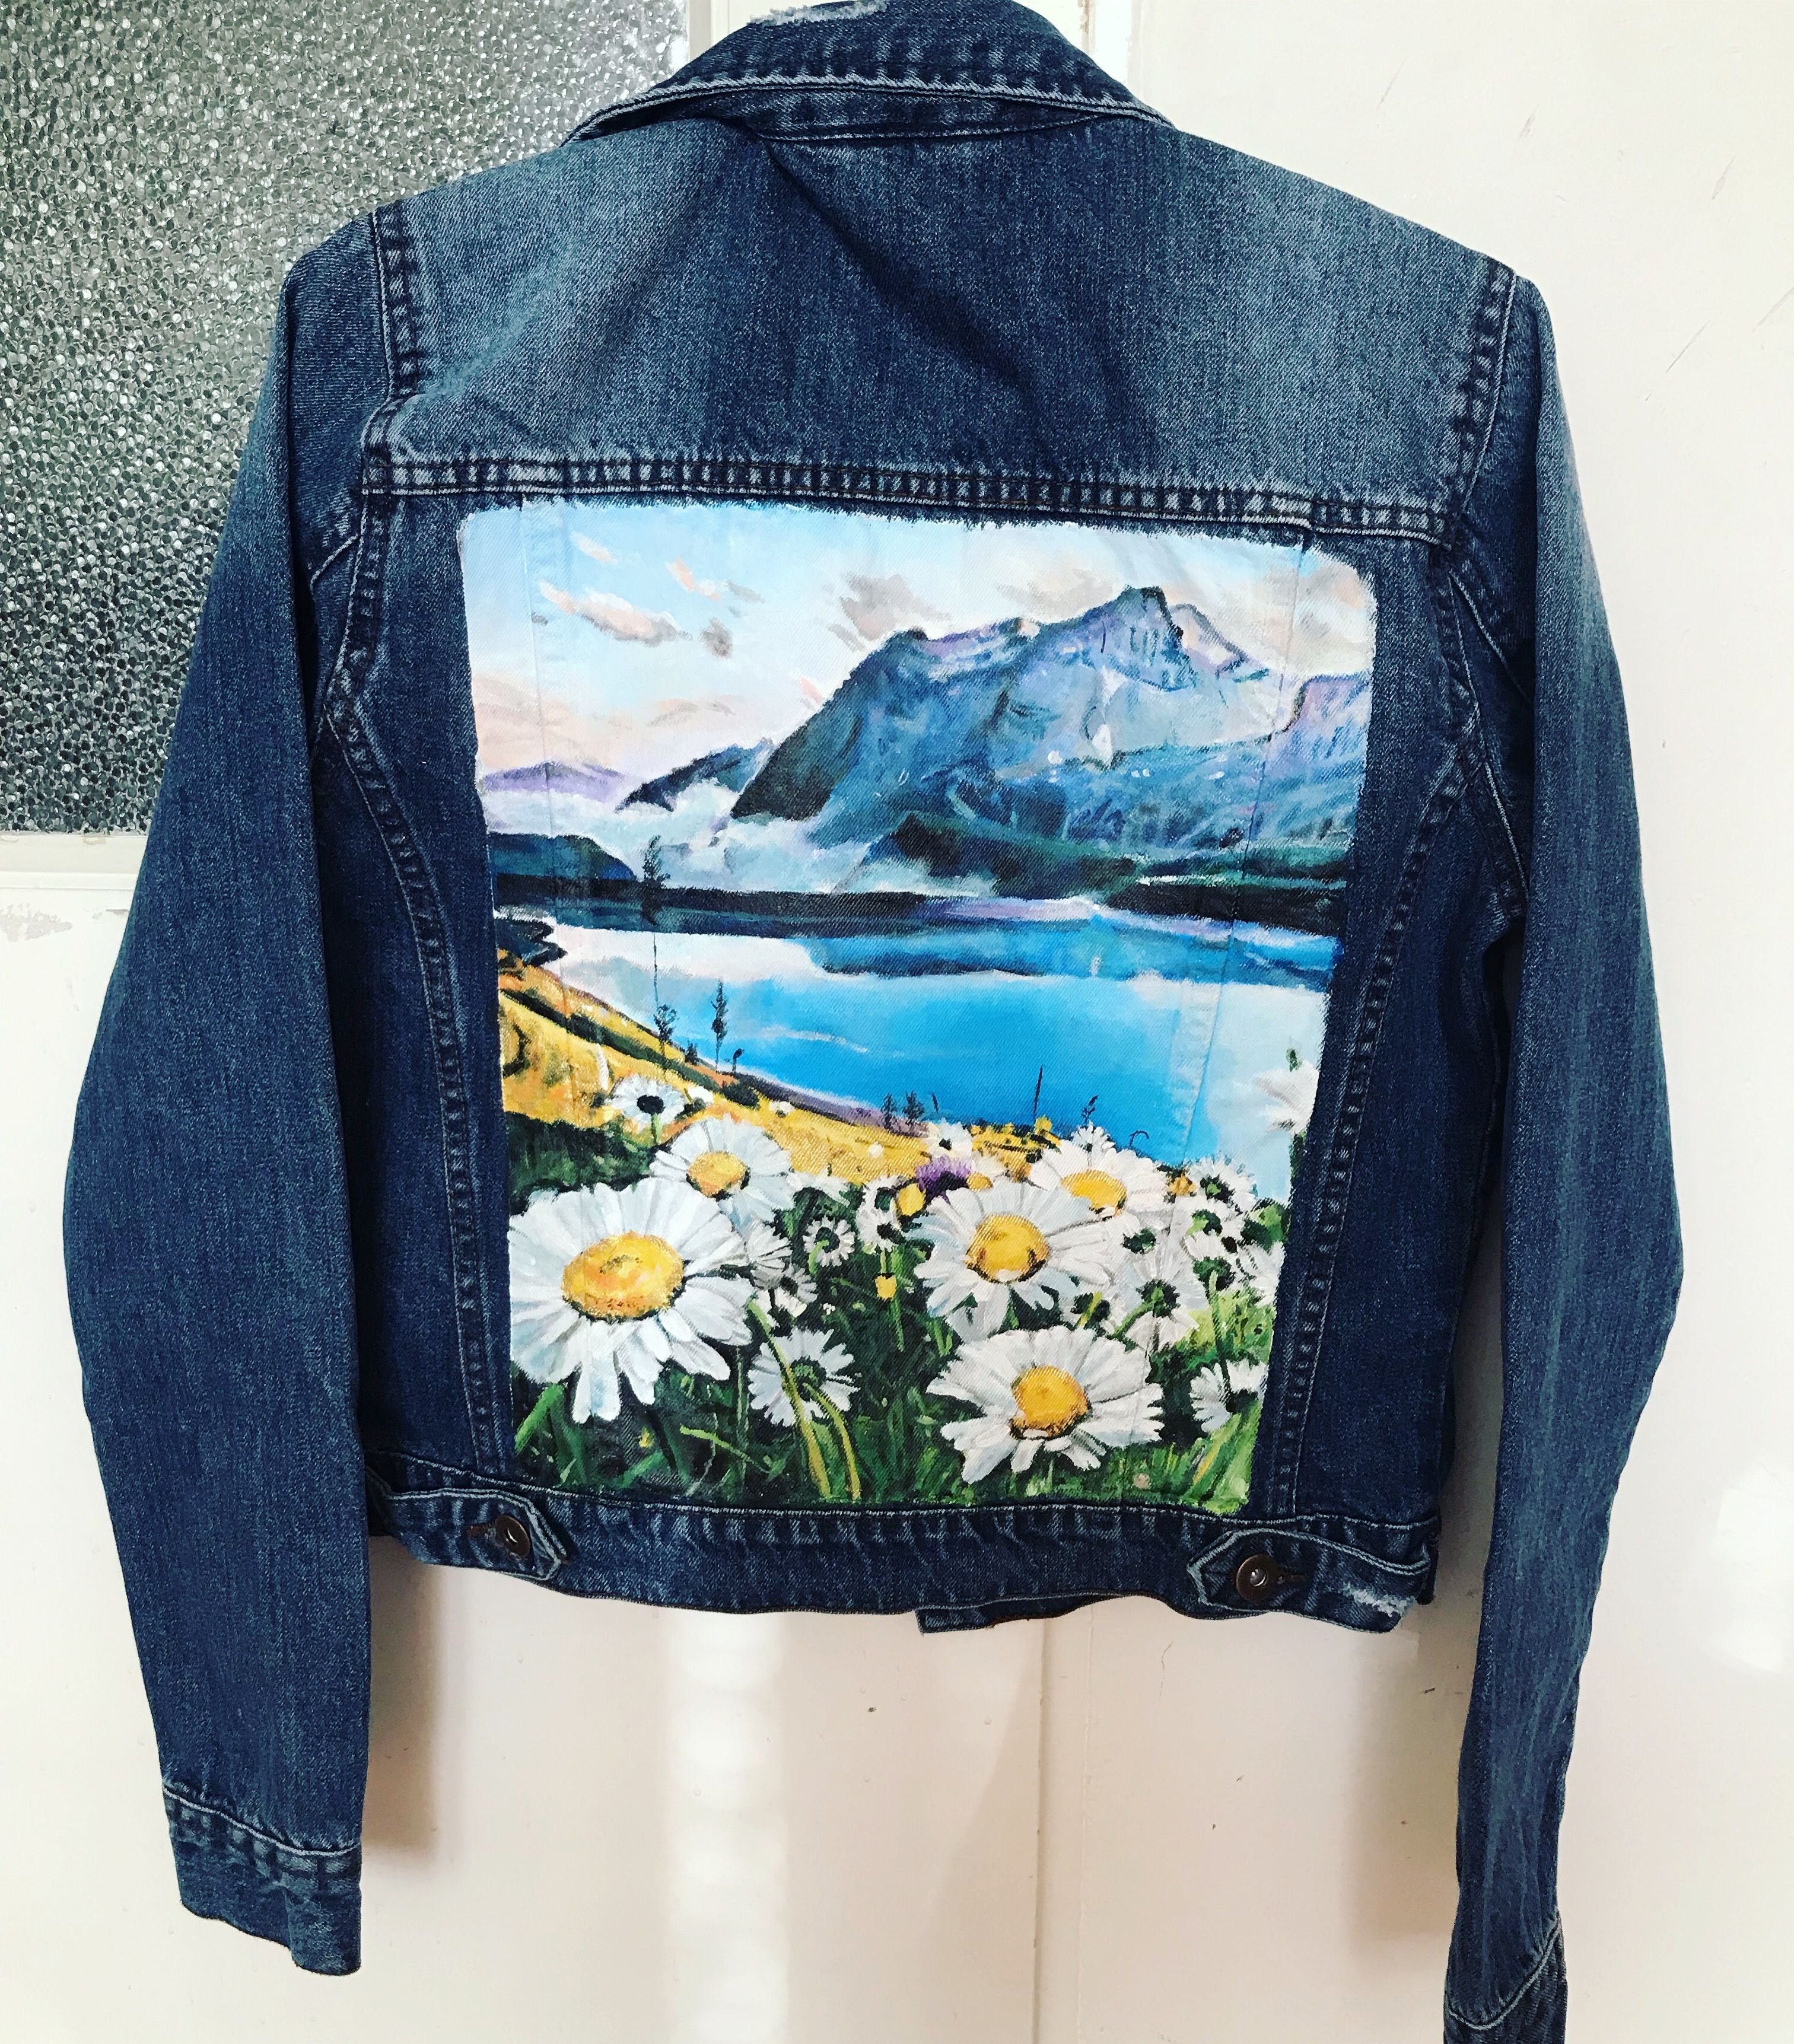 Oopsy Daisy Hand Painted Denim Jacket Painted Clothes Diy Hand Painted Denim Jacket Painted Jacket [ 3446 x 3024 Pixel ]